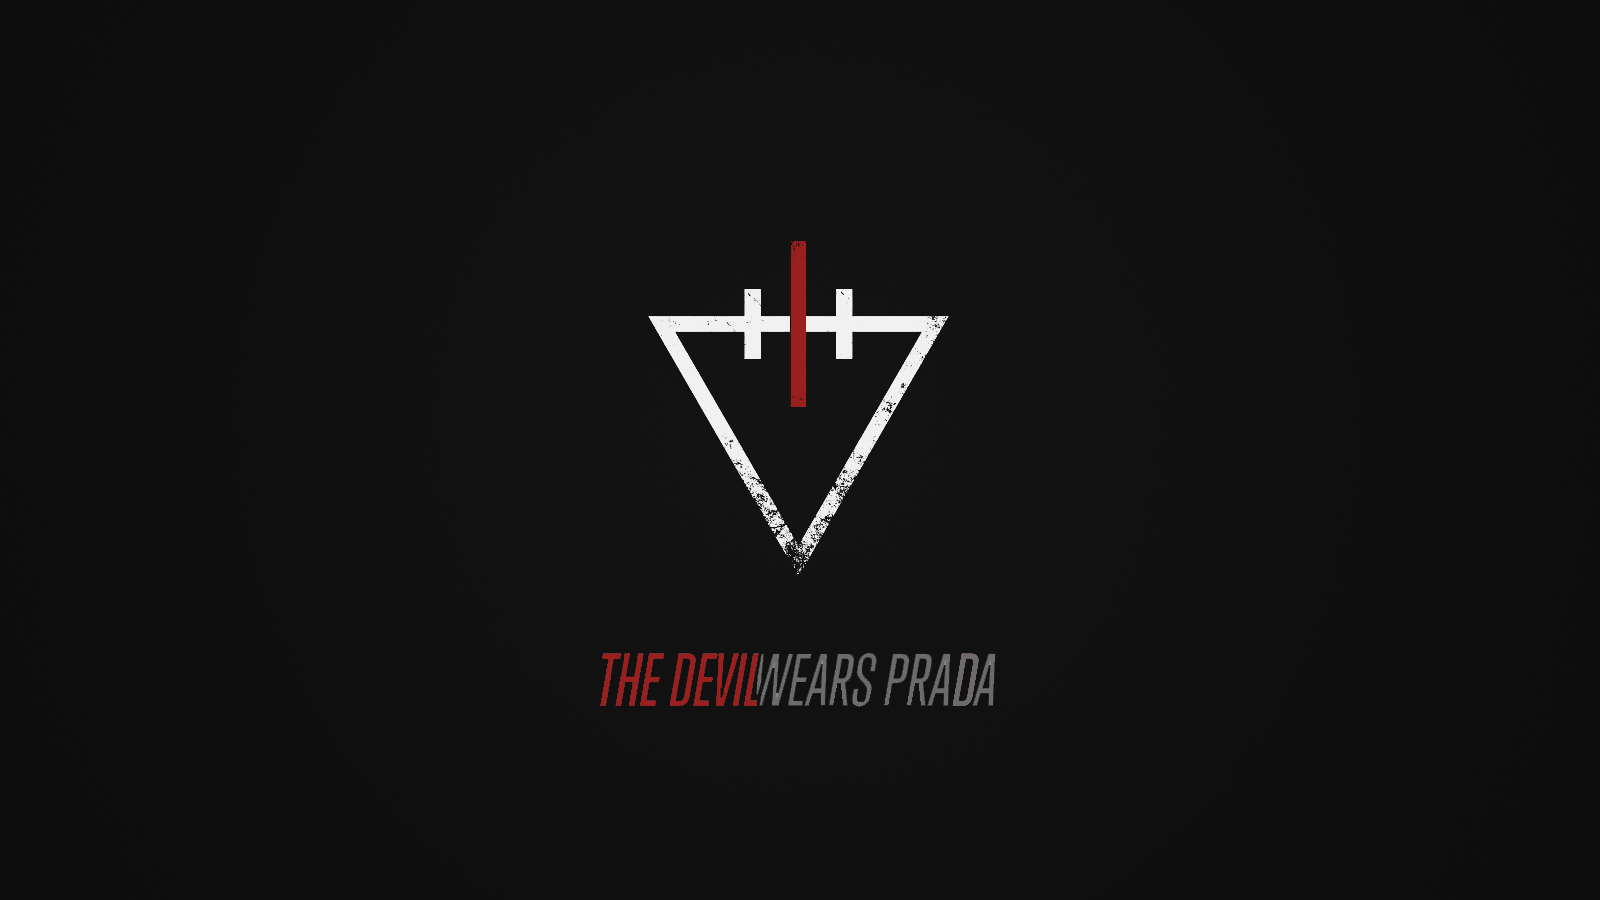 The Devil Wears Prada Wallpaper